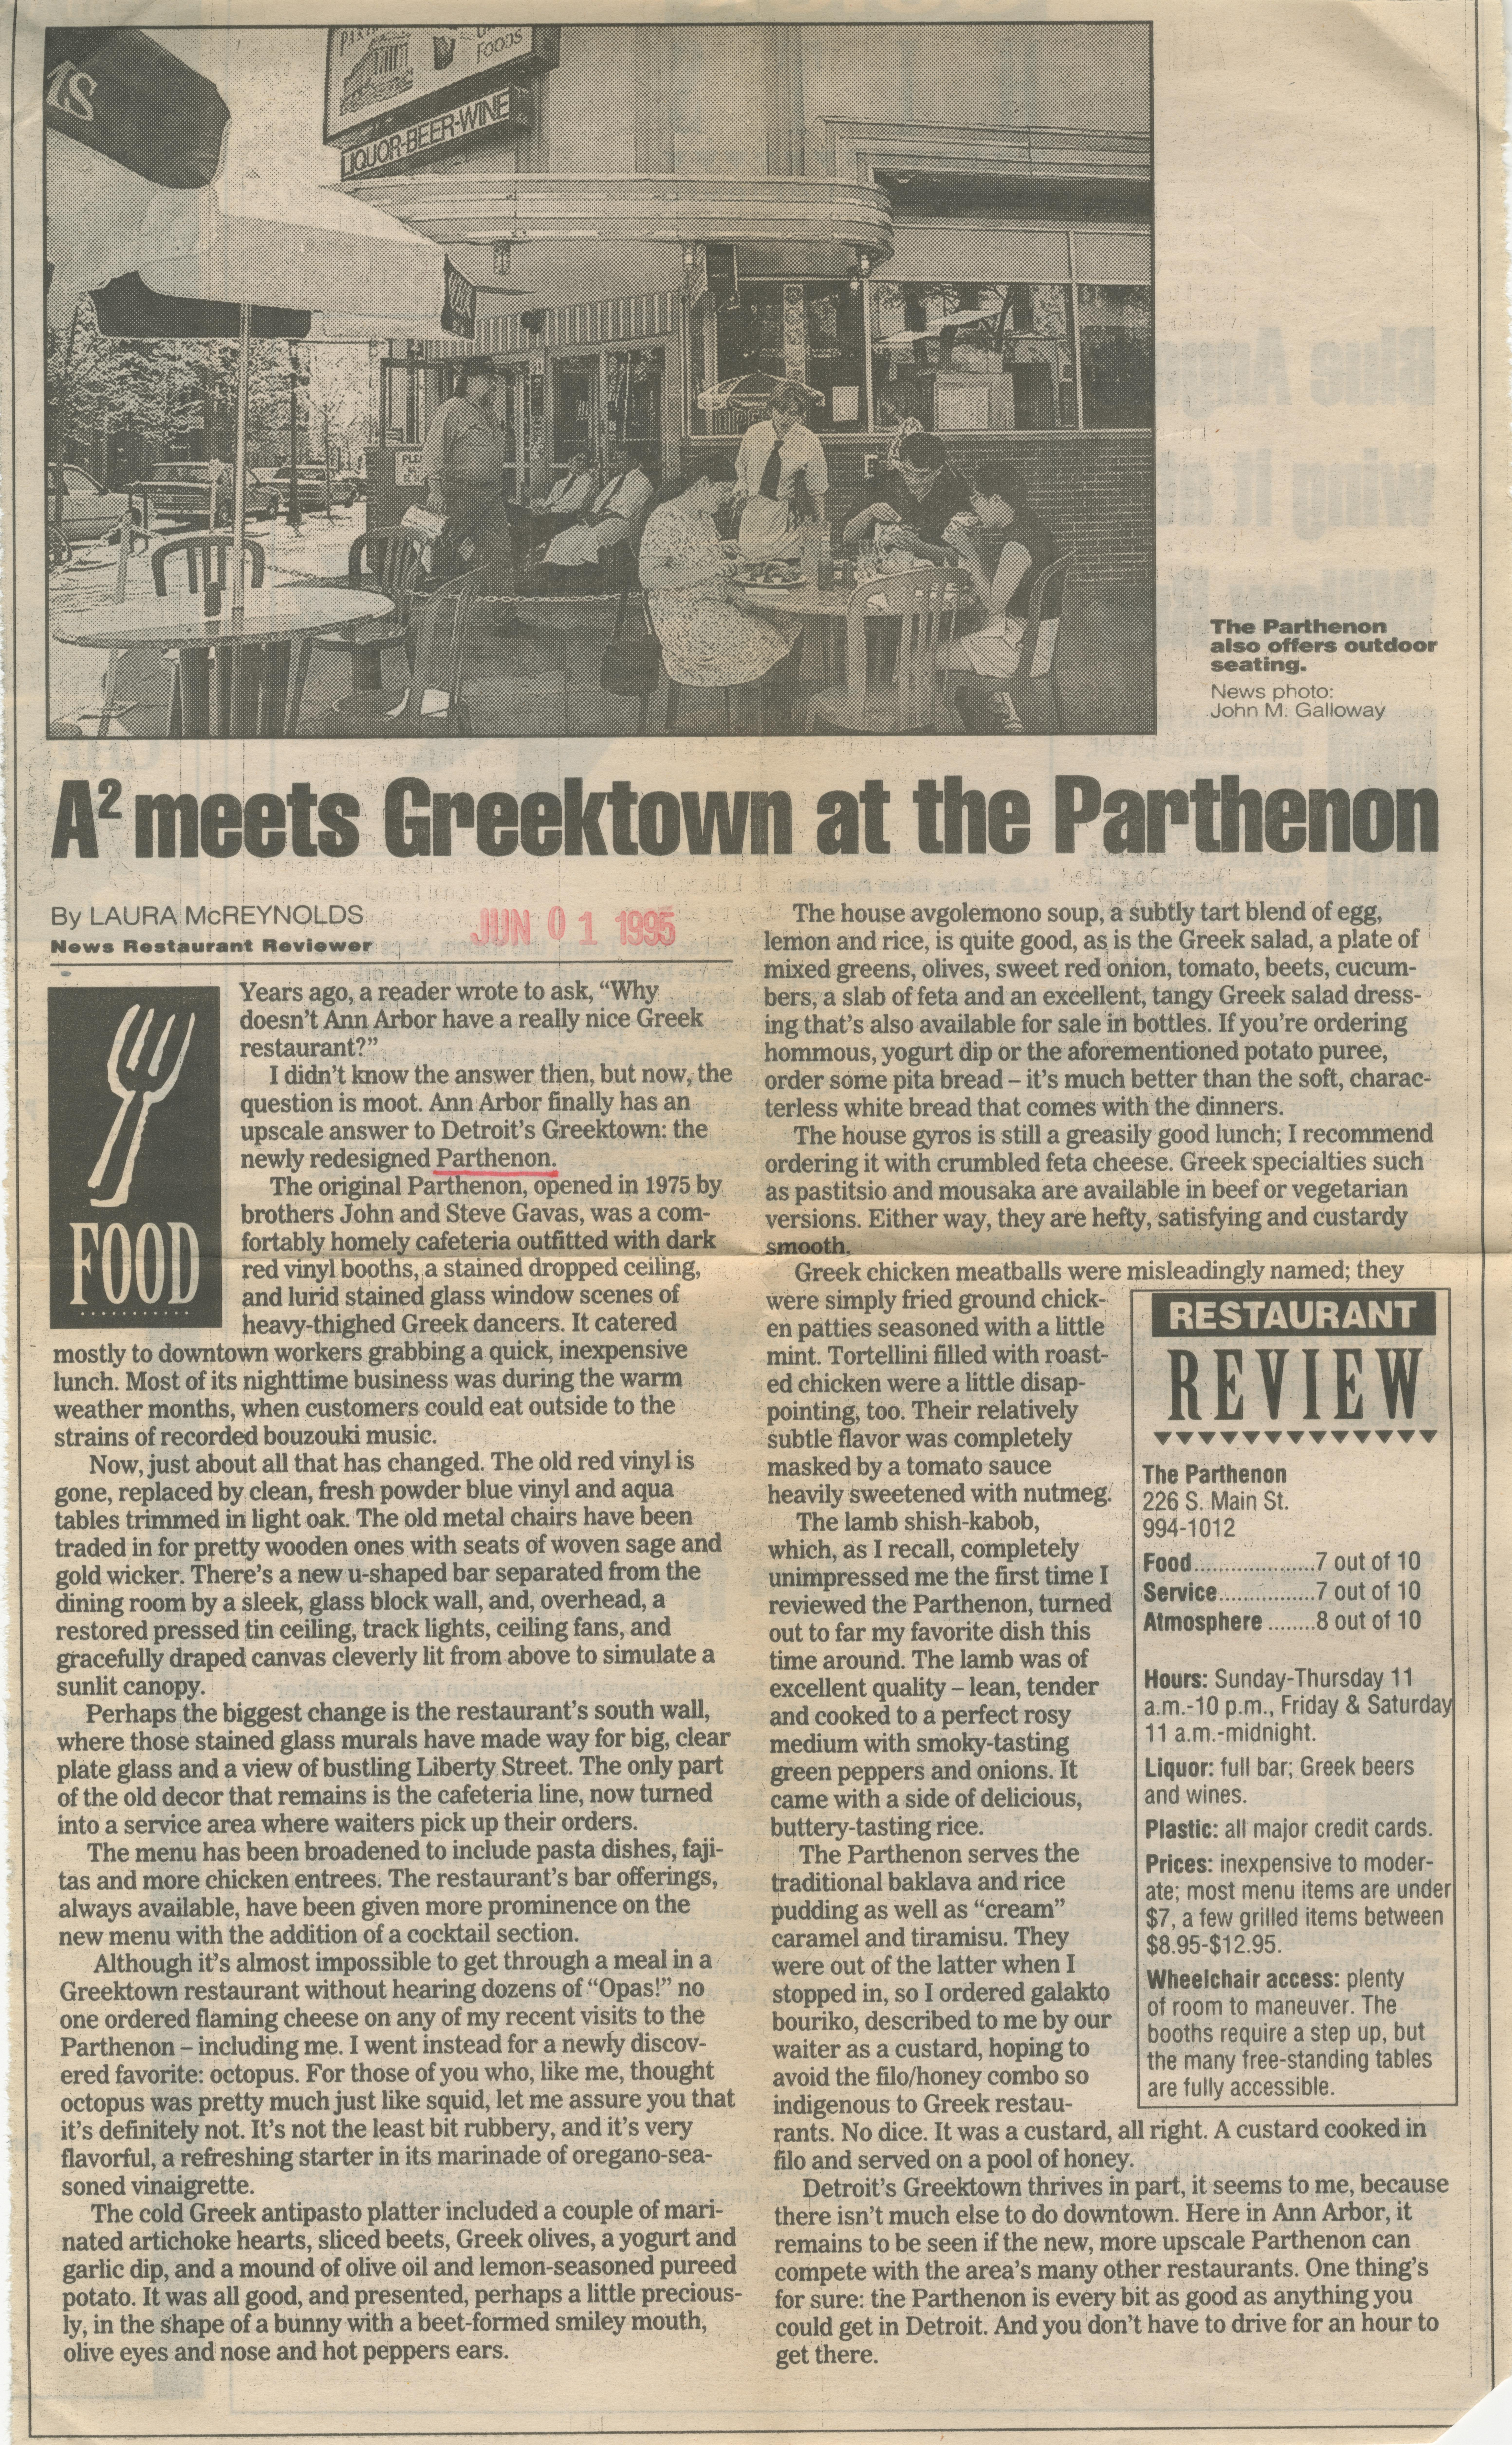 A2 Meets Greektown at the Parthenon image